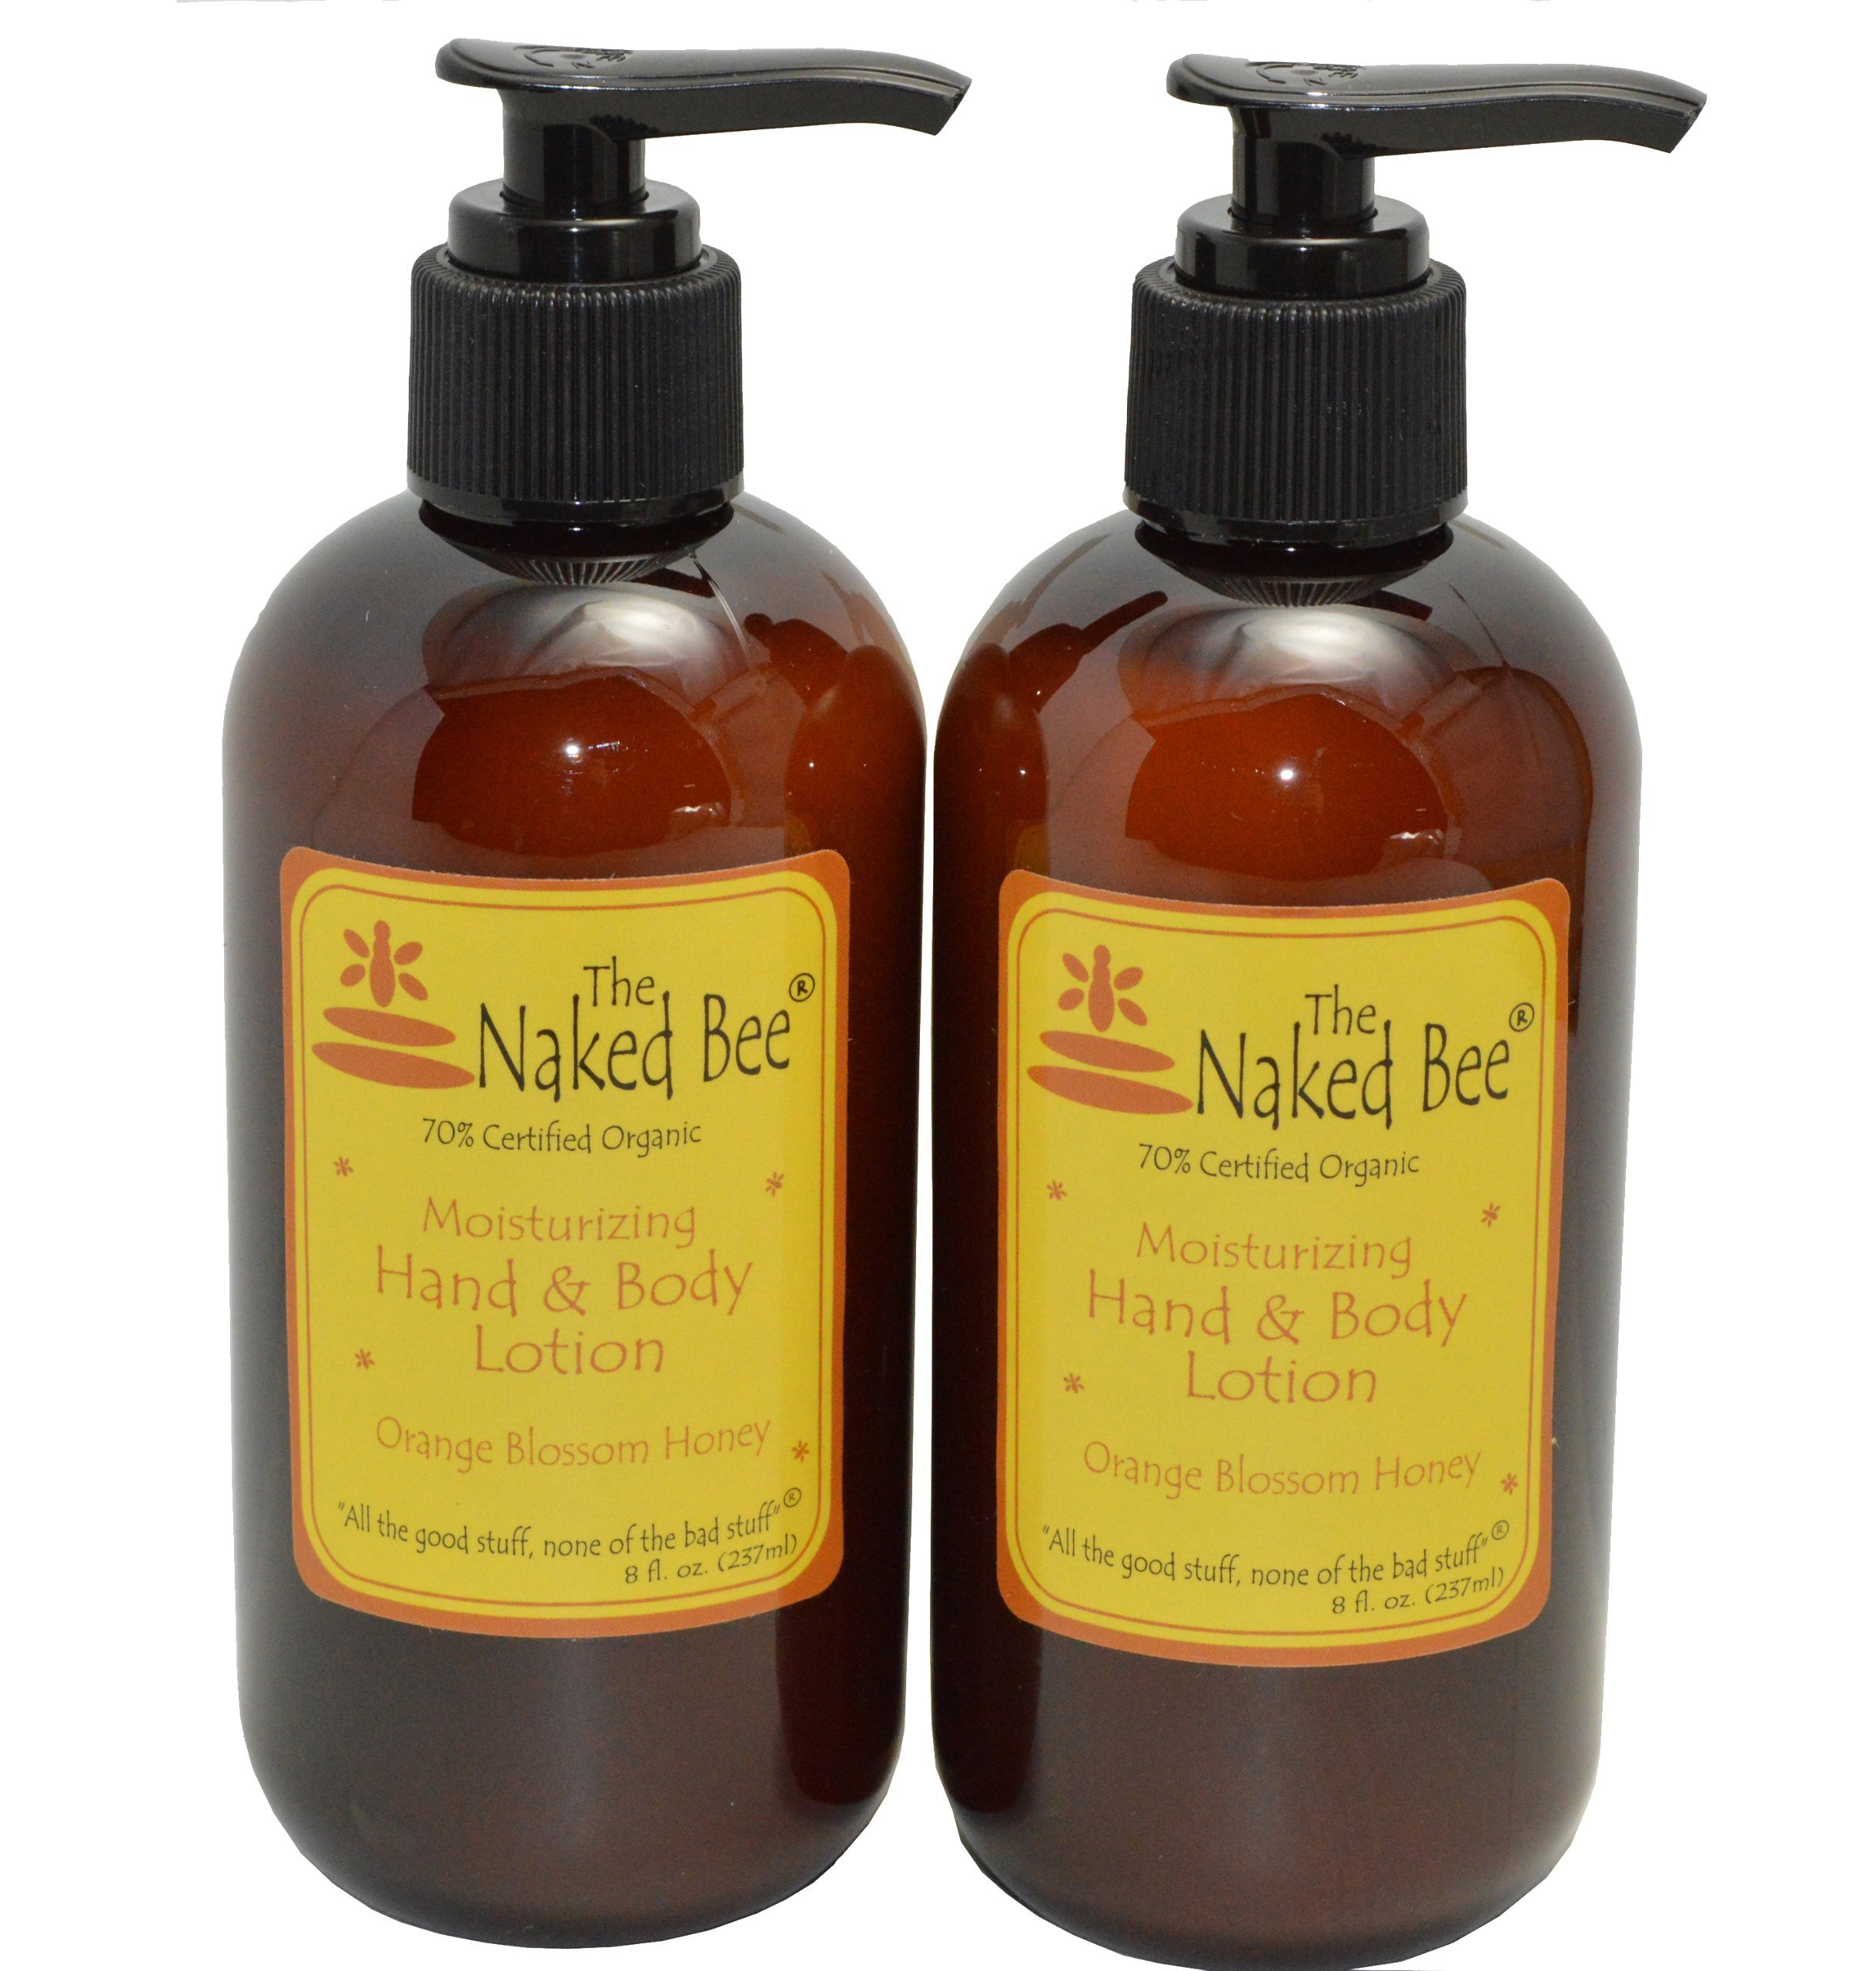 The Naked Bee Orange Blossom Honey Hand & Body Lotion, 8 oz, 2 Pack by The Naked Bee (Image #1)